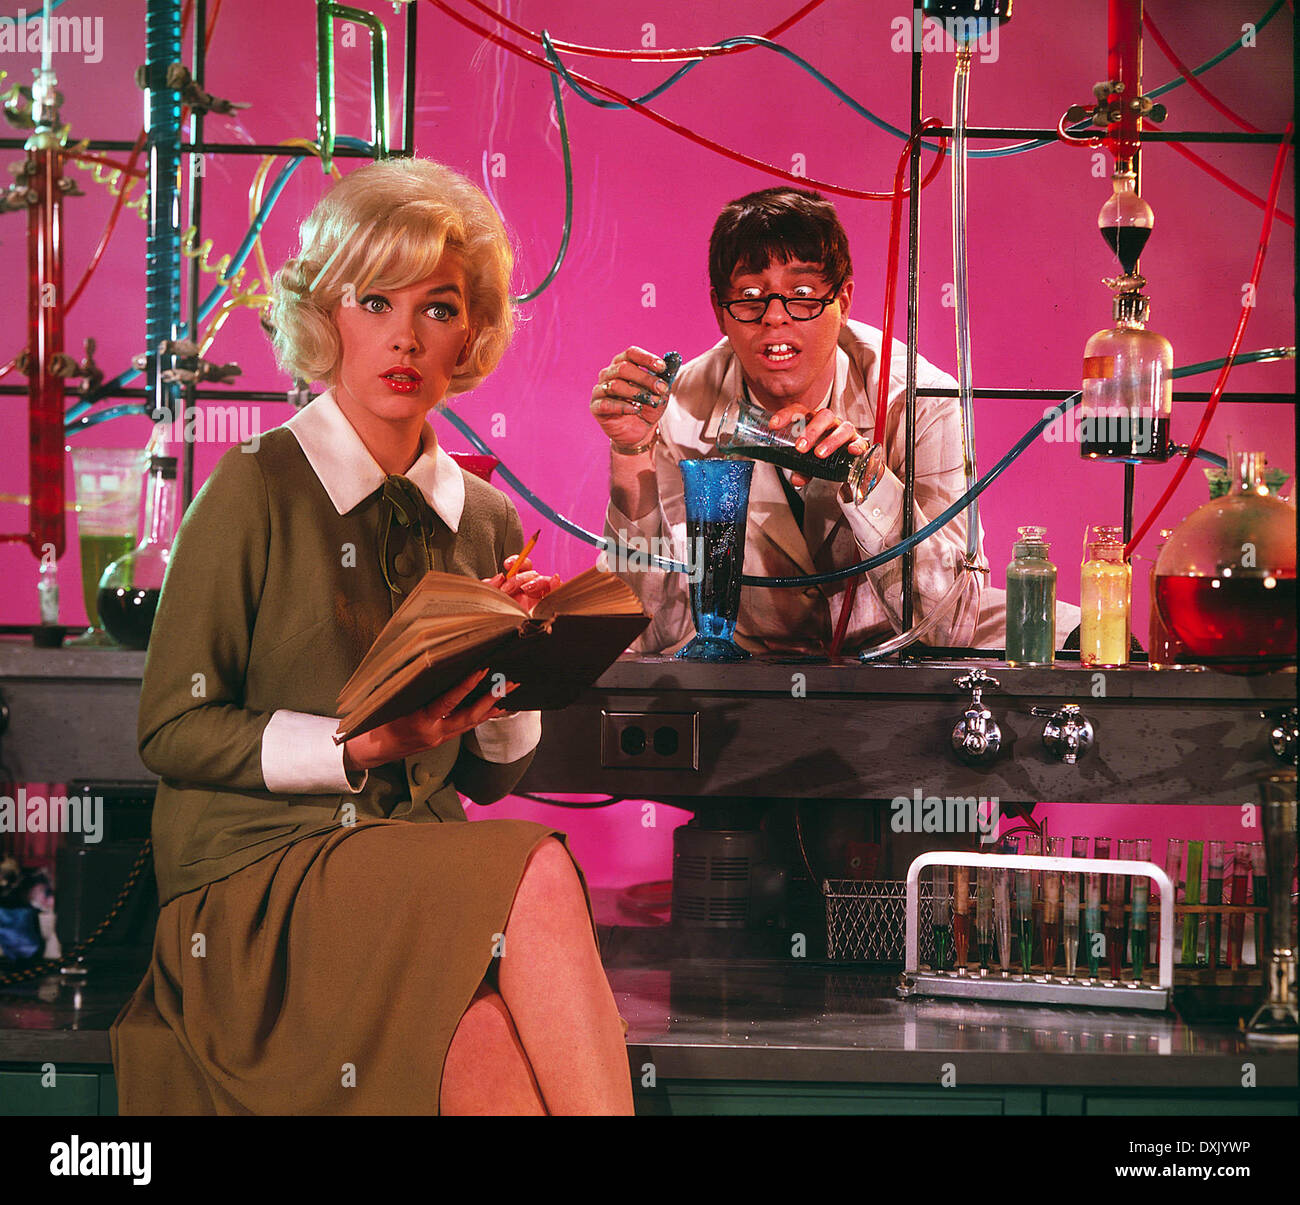 THE NUTTY PROFESSOR (US1963) STELLA STEVENS, JERRY LEWIS MAD - Stock Image